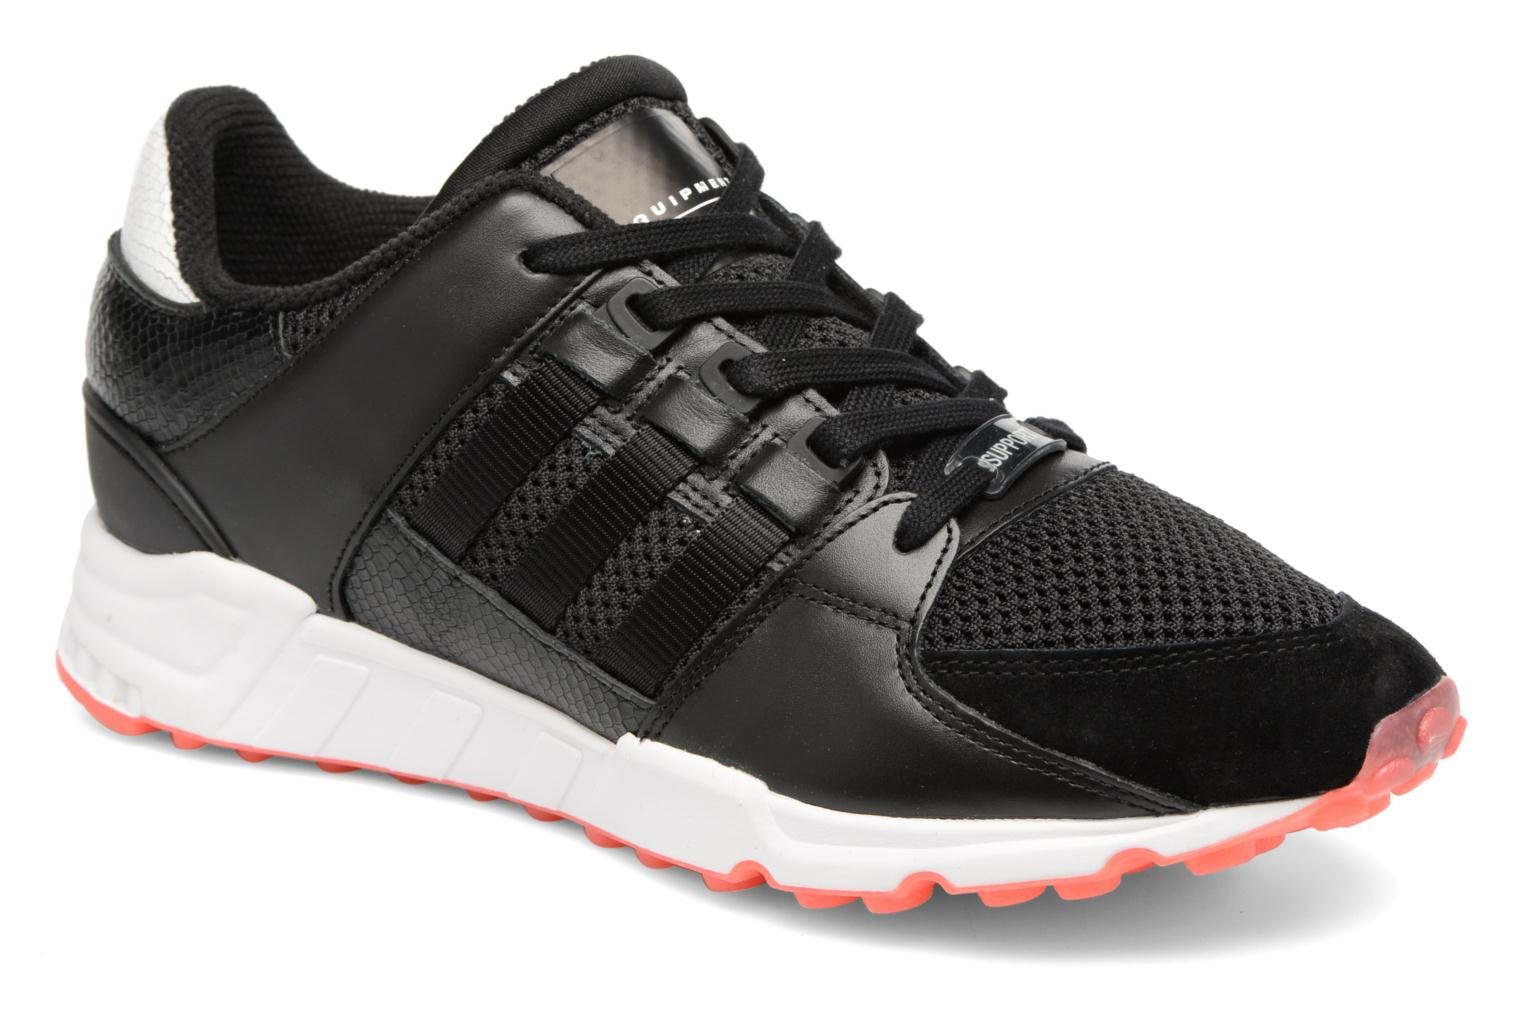 Eqt Support Rf par Adidas Originals